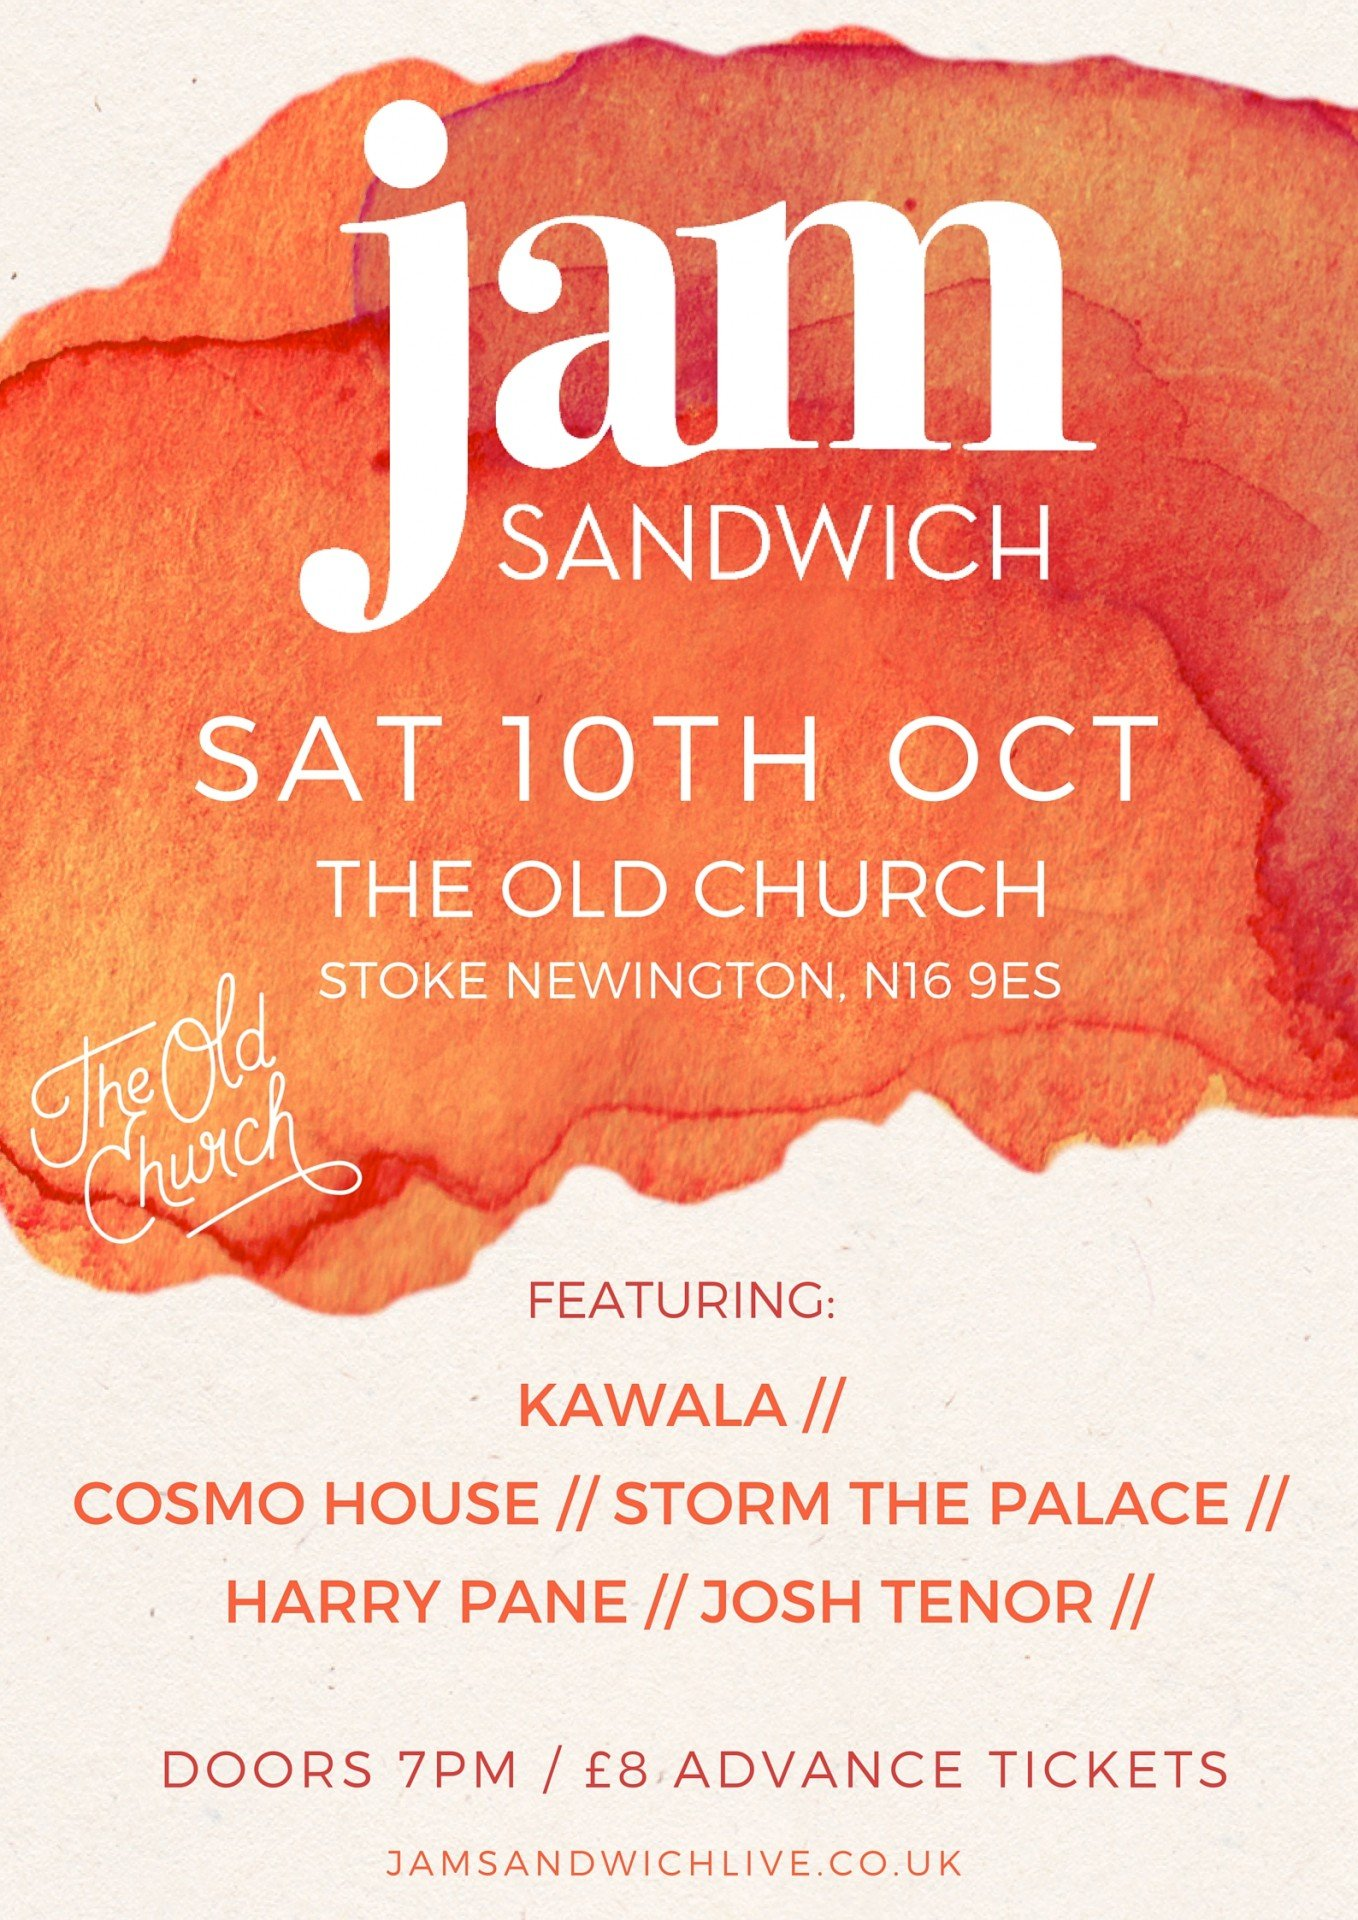 Jam Sandwich at The Old Church Saturday 10th October featuring Kawala, Storm the Palace, Cosmo House, Josh Tenor, Harry Pane.